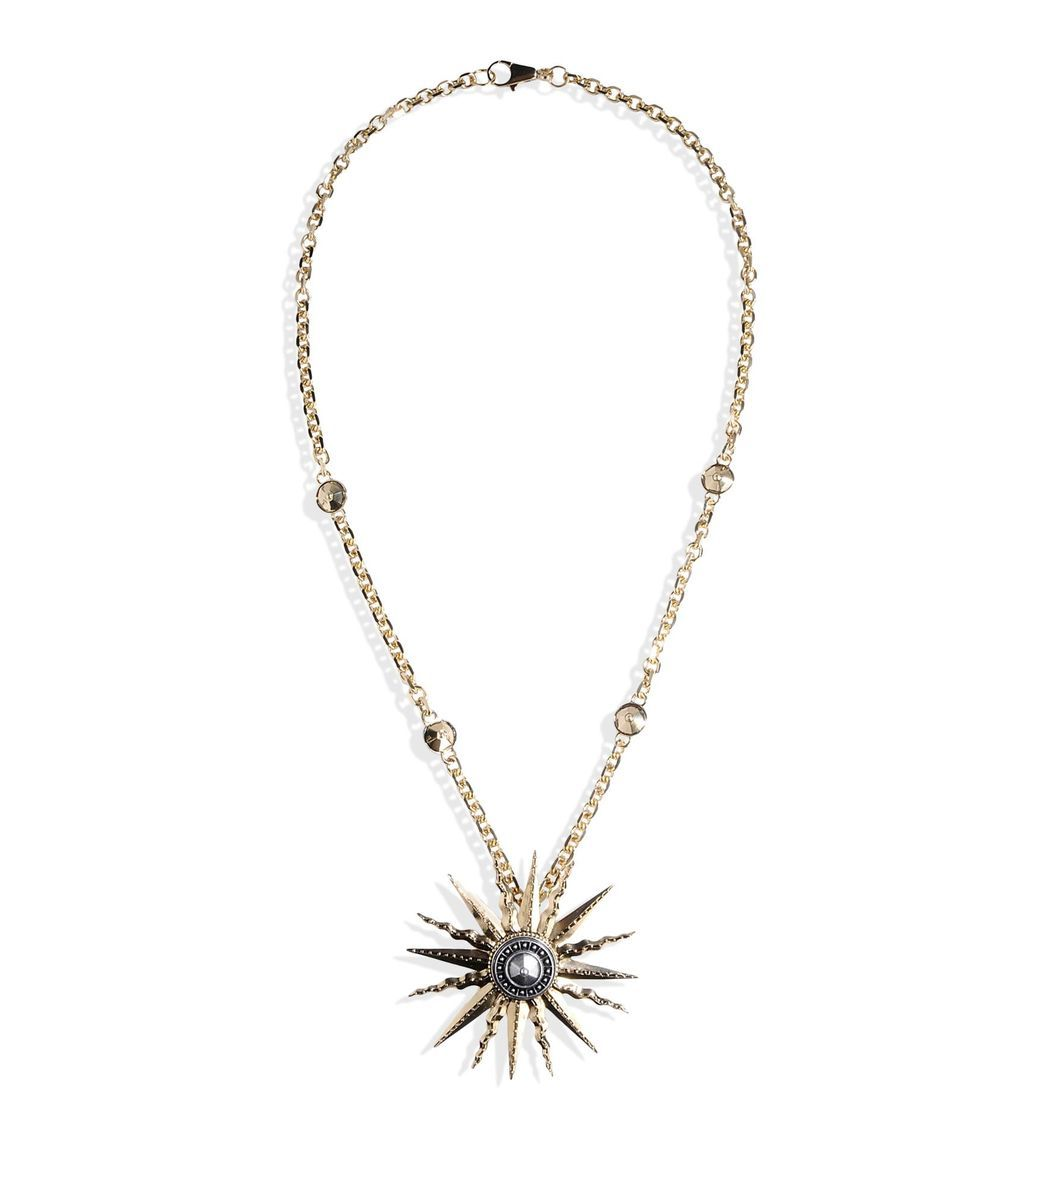 JEWELLERY - Necklaces FAUSTO PUGLISI pEwOuuKMlY